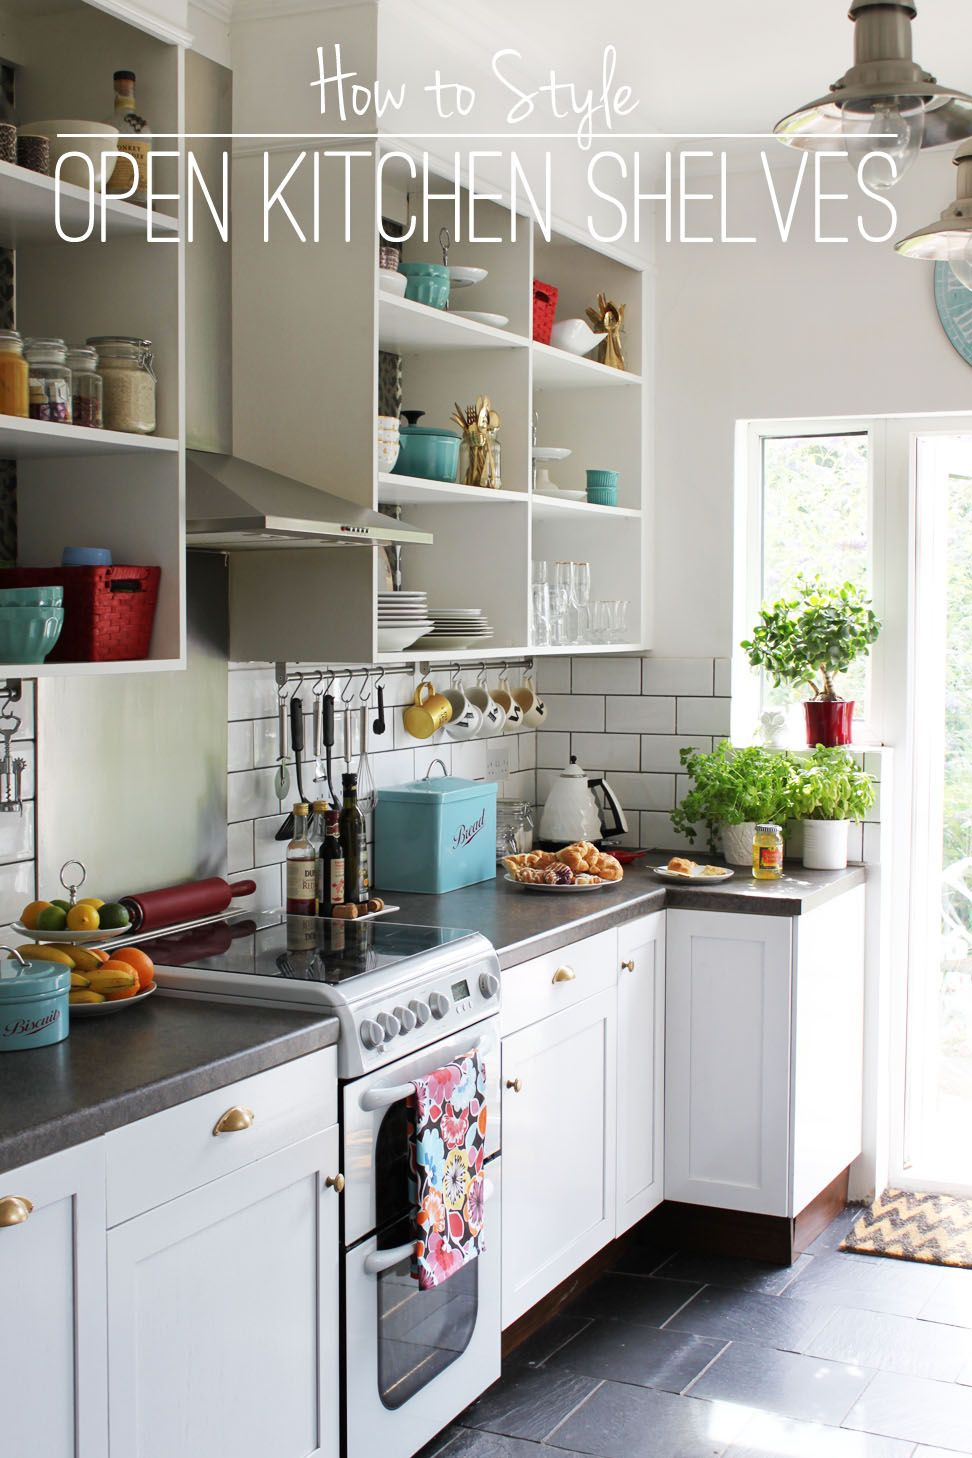 Kitchens With Open Shelving Open Kitchen Shelves Yes Makes You Wanna Keep Them Clean And